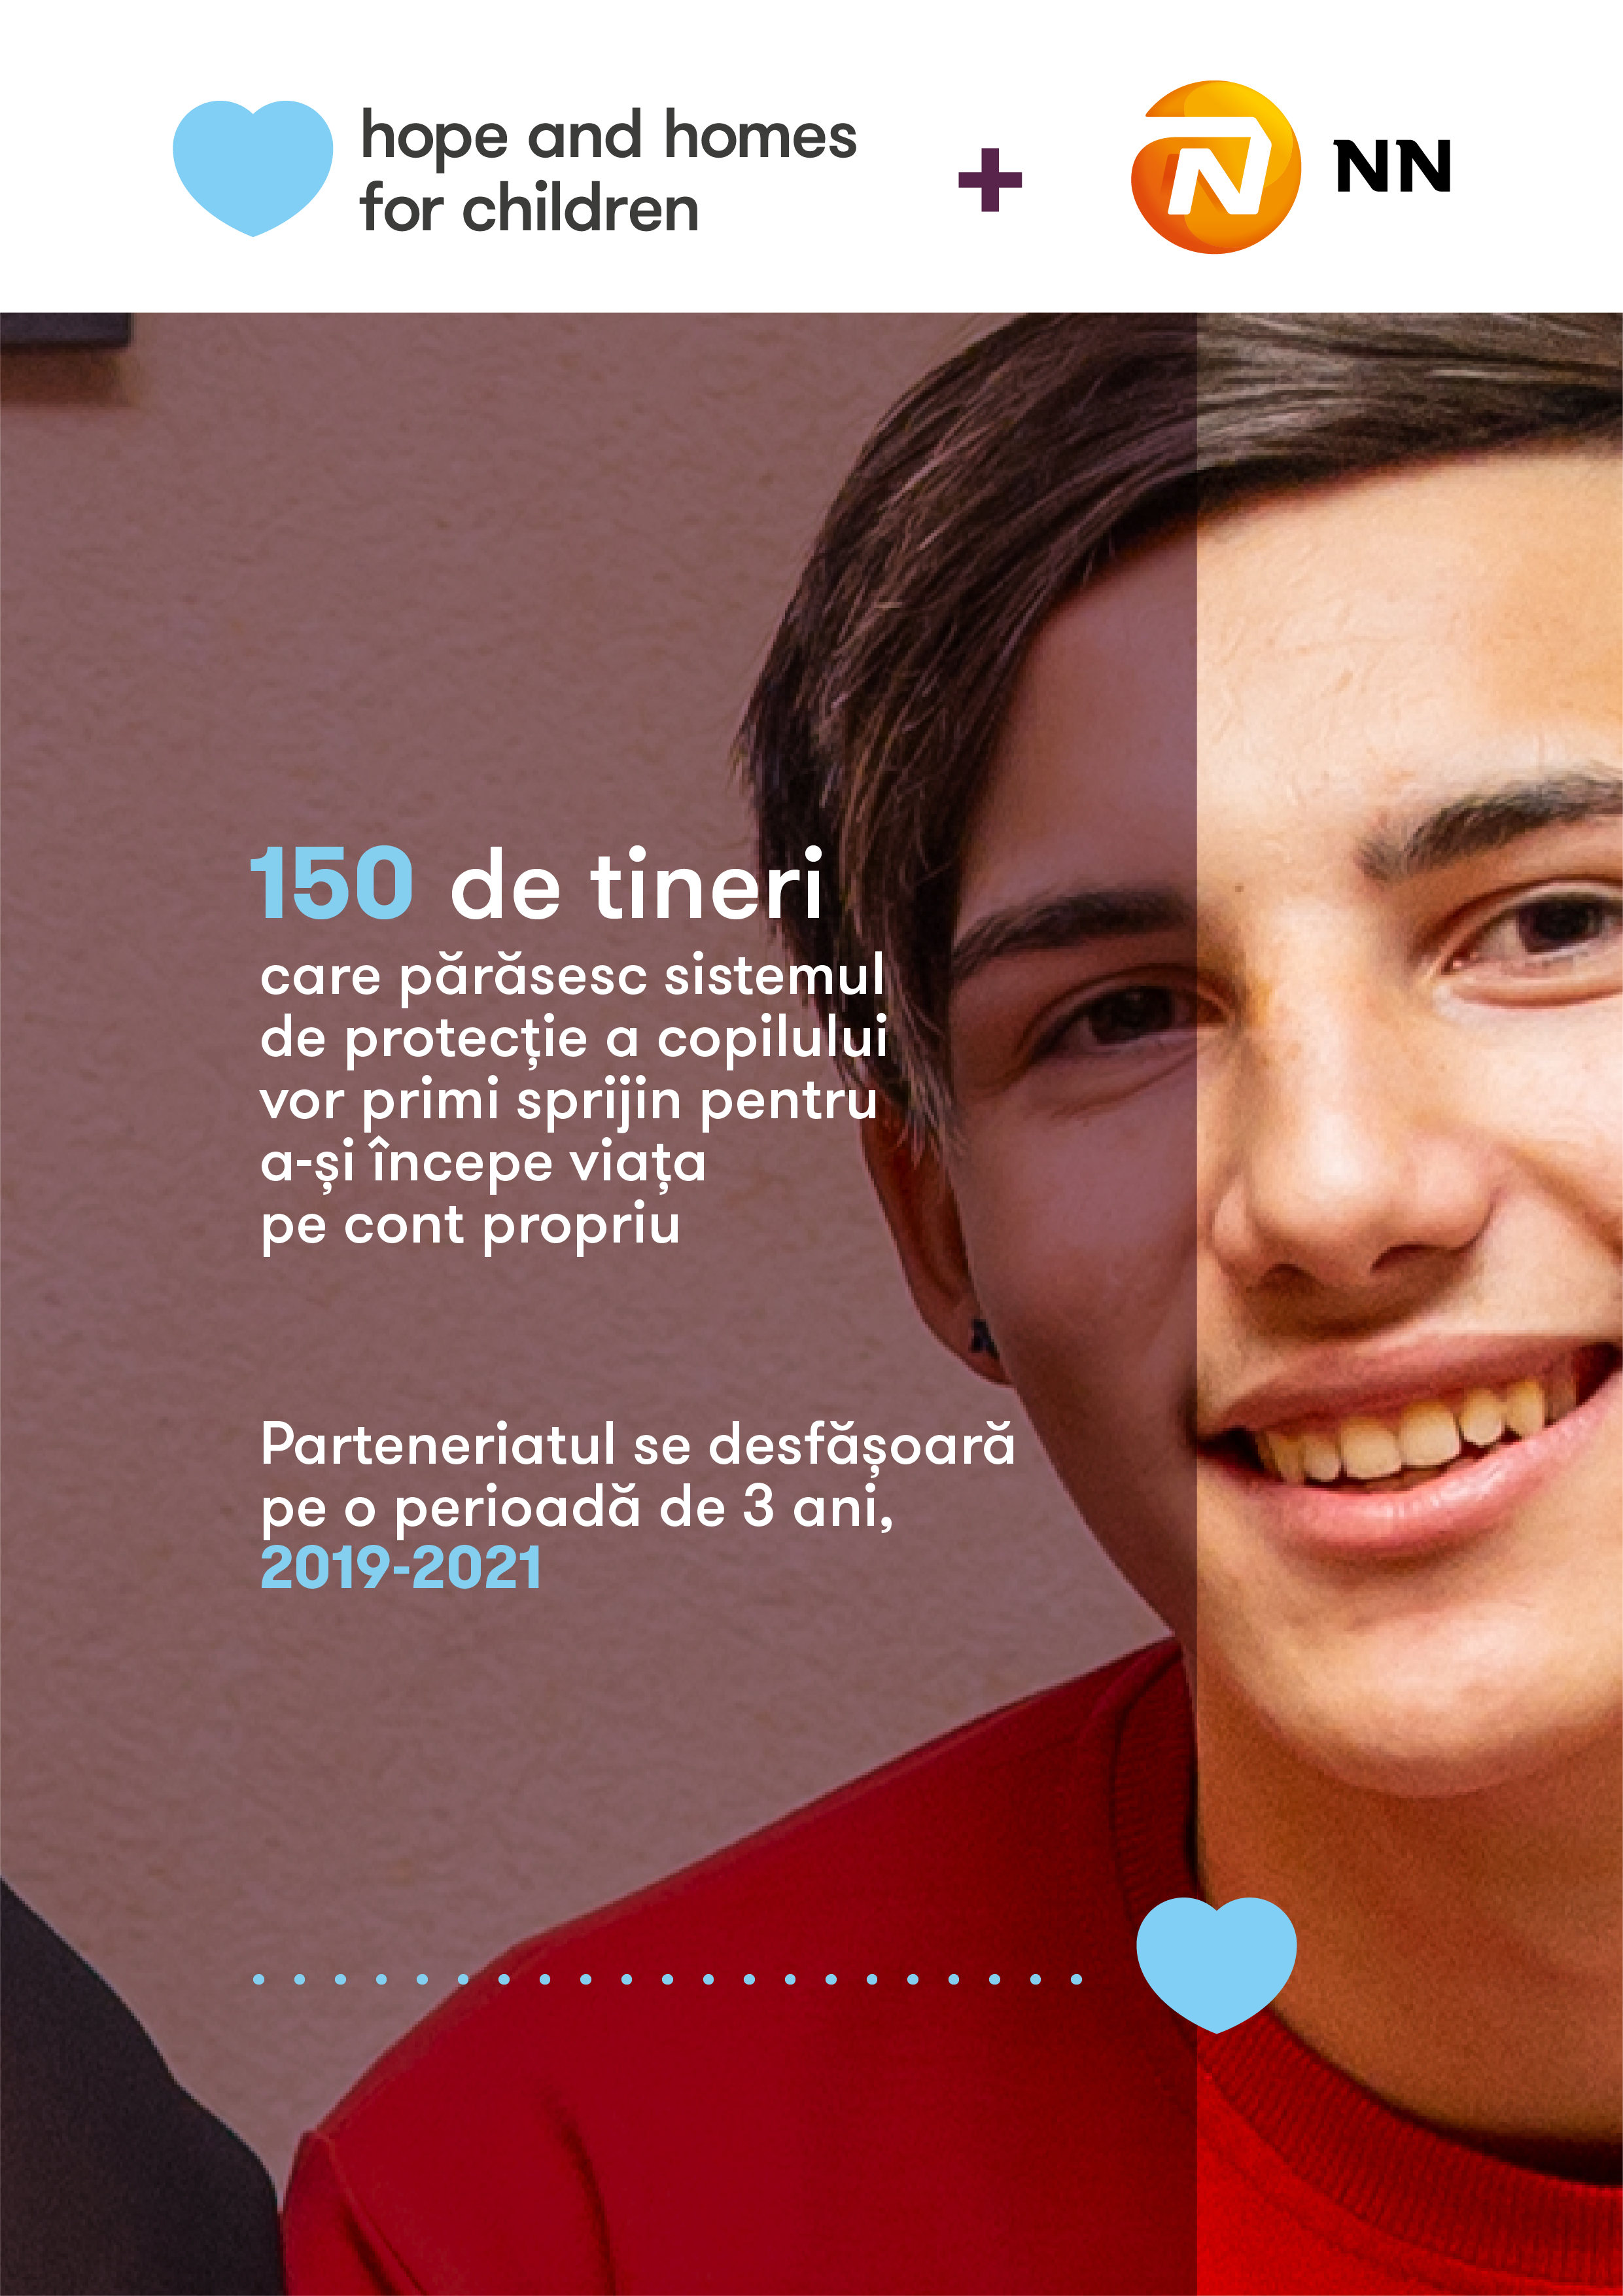 Hope and Homes for Children_NN_Vizual parteneriat-02.png